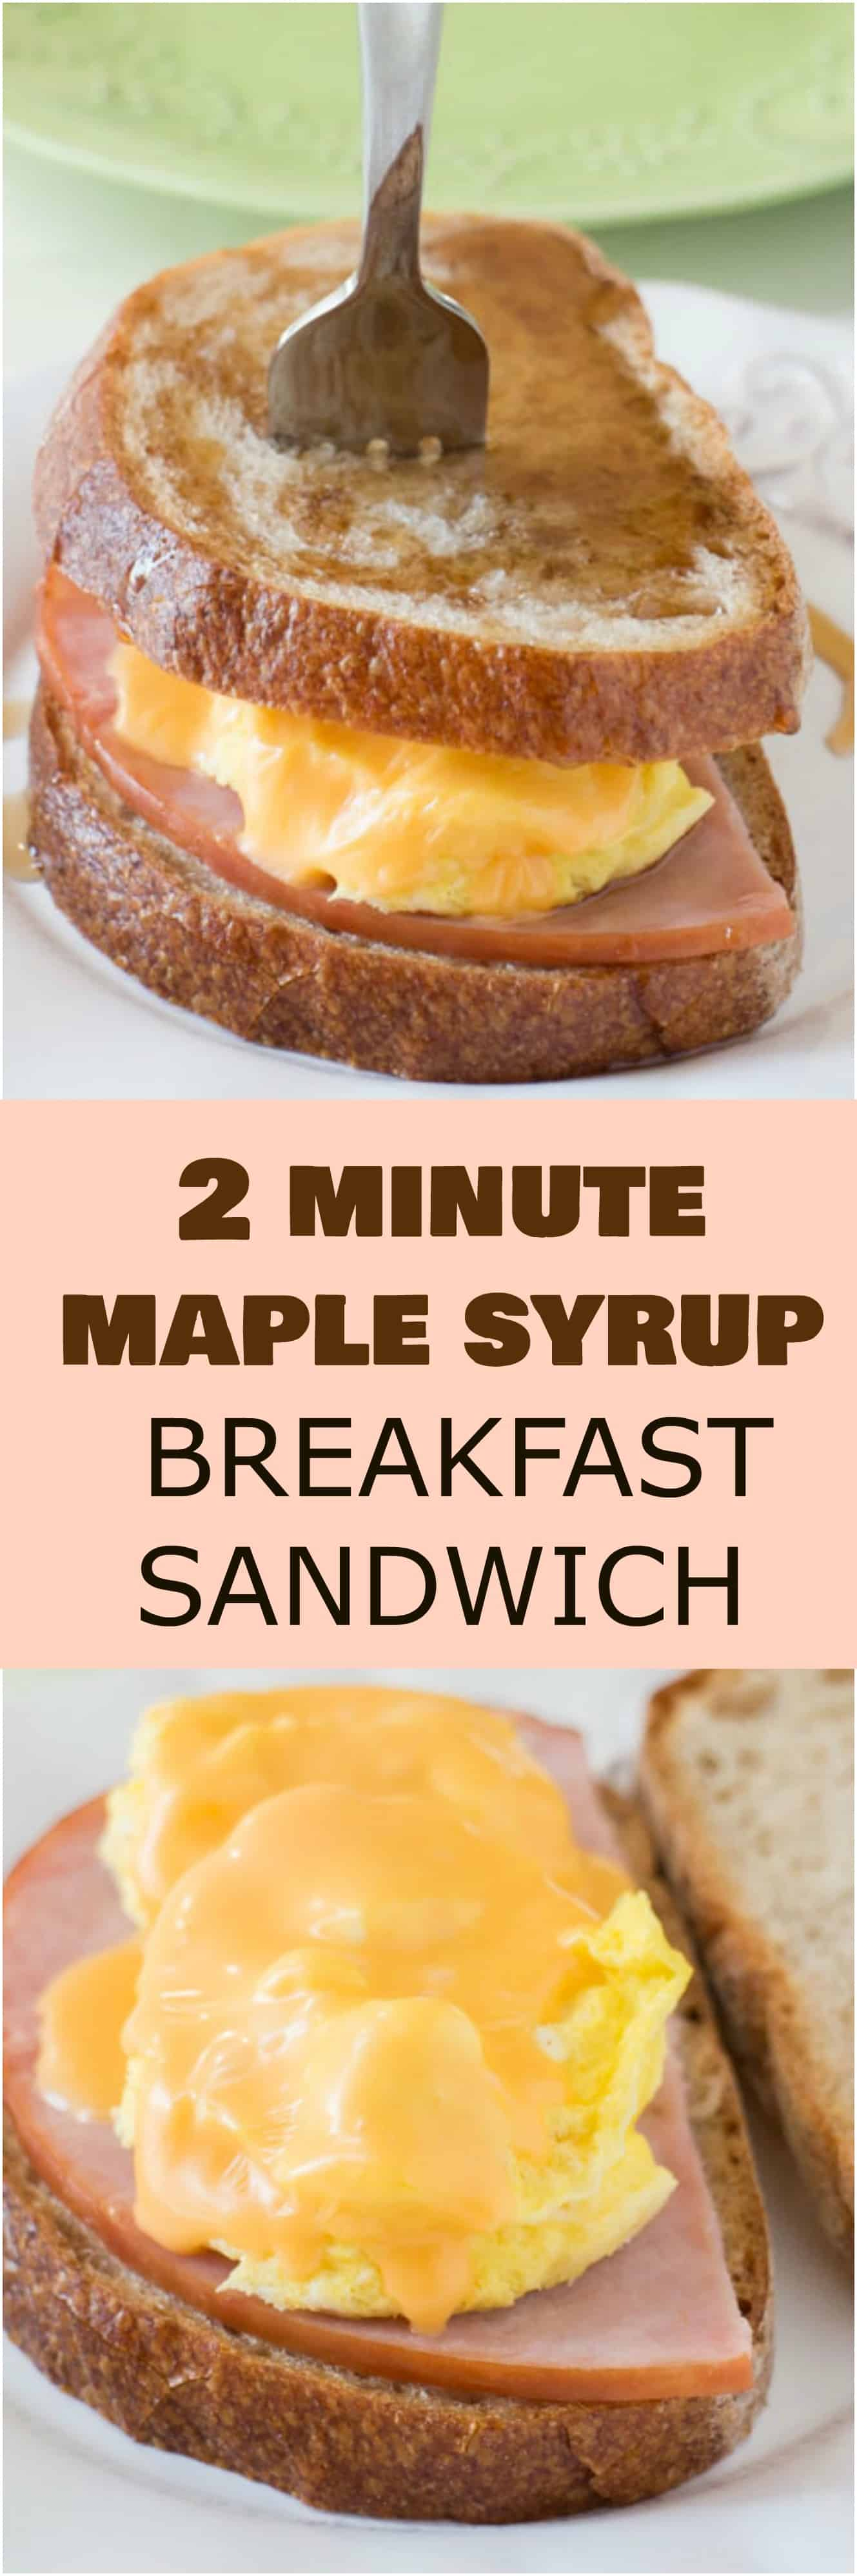 These taste like FRENCH TOAST! EASY, YUMMY breakfast sandwich made in 2 MINUTES! This Maple Syrup, Egg, Ham and Cheese Sandwich recipe is great for a quick breakfast! You can freeze the sandwiches to make ahead too!